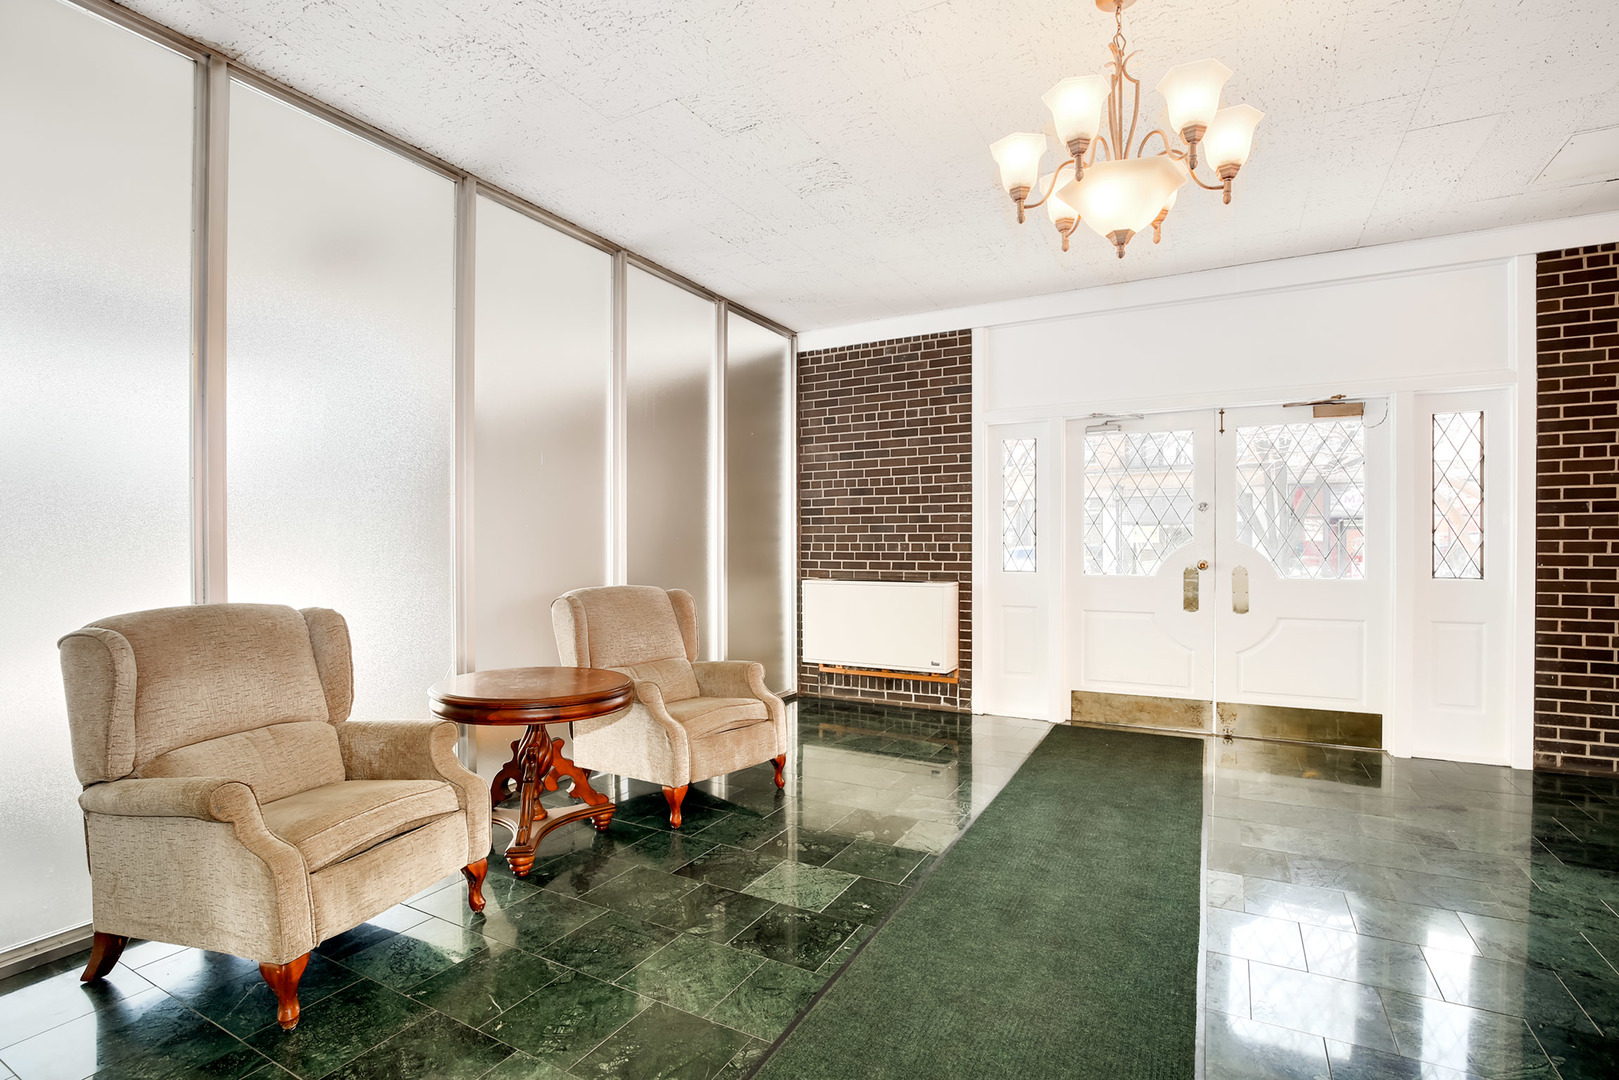 ... 150 South Oak Park Avenue, #307, Oak Park, IL 60302 ...